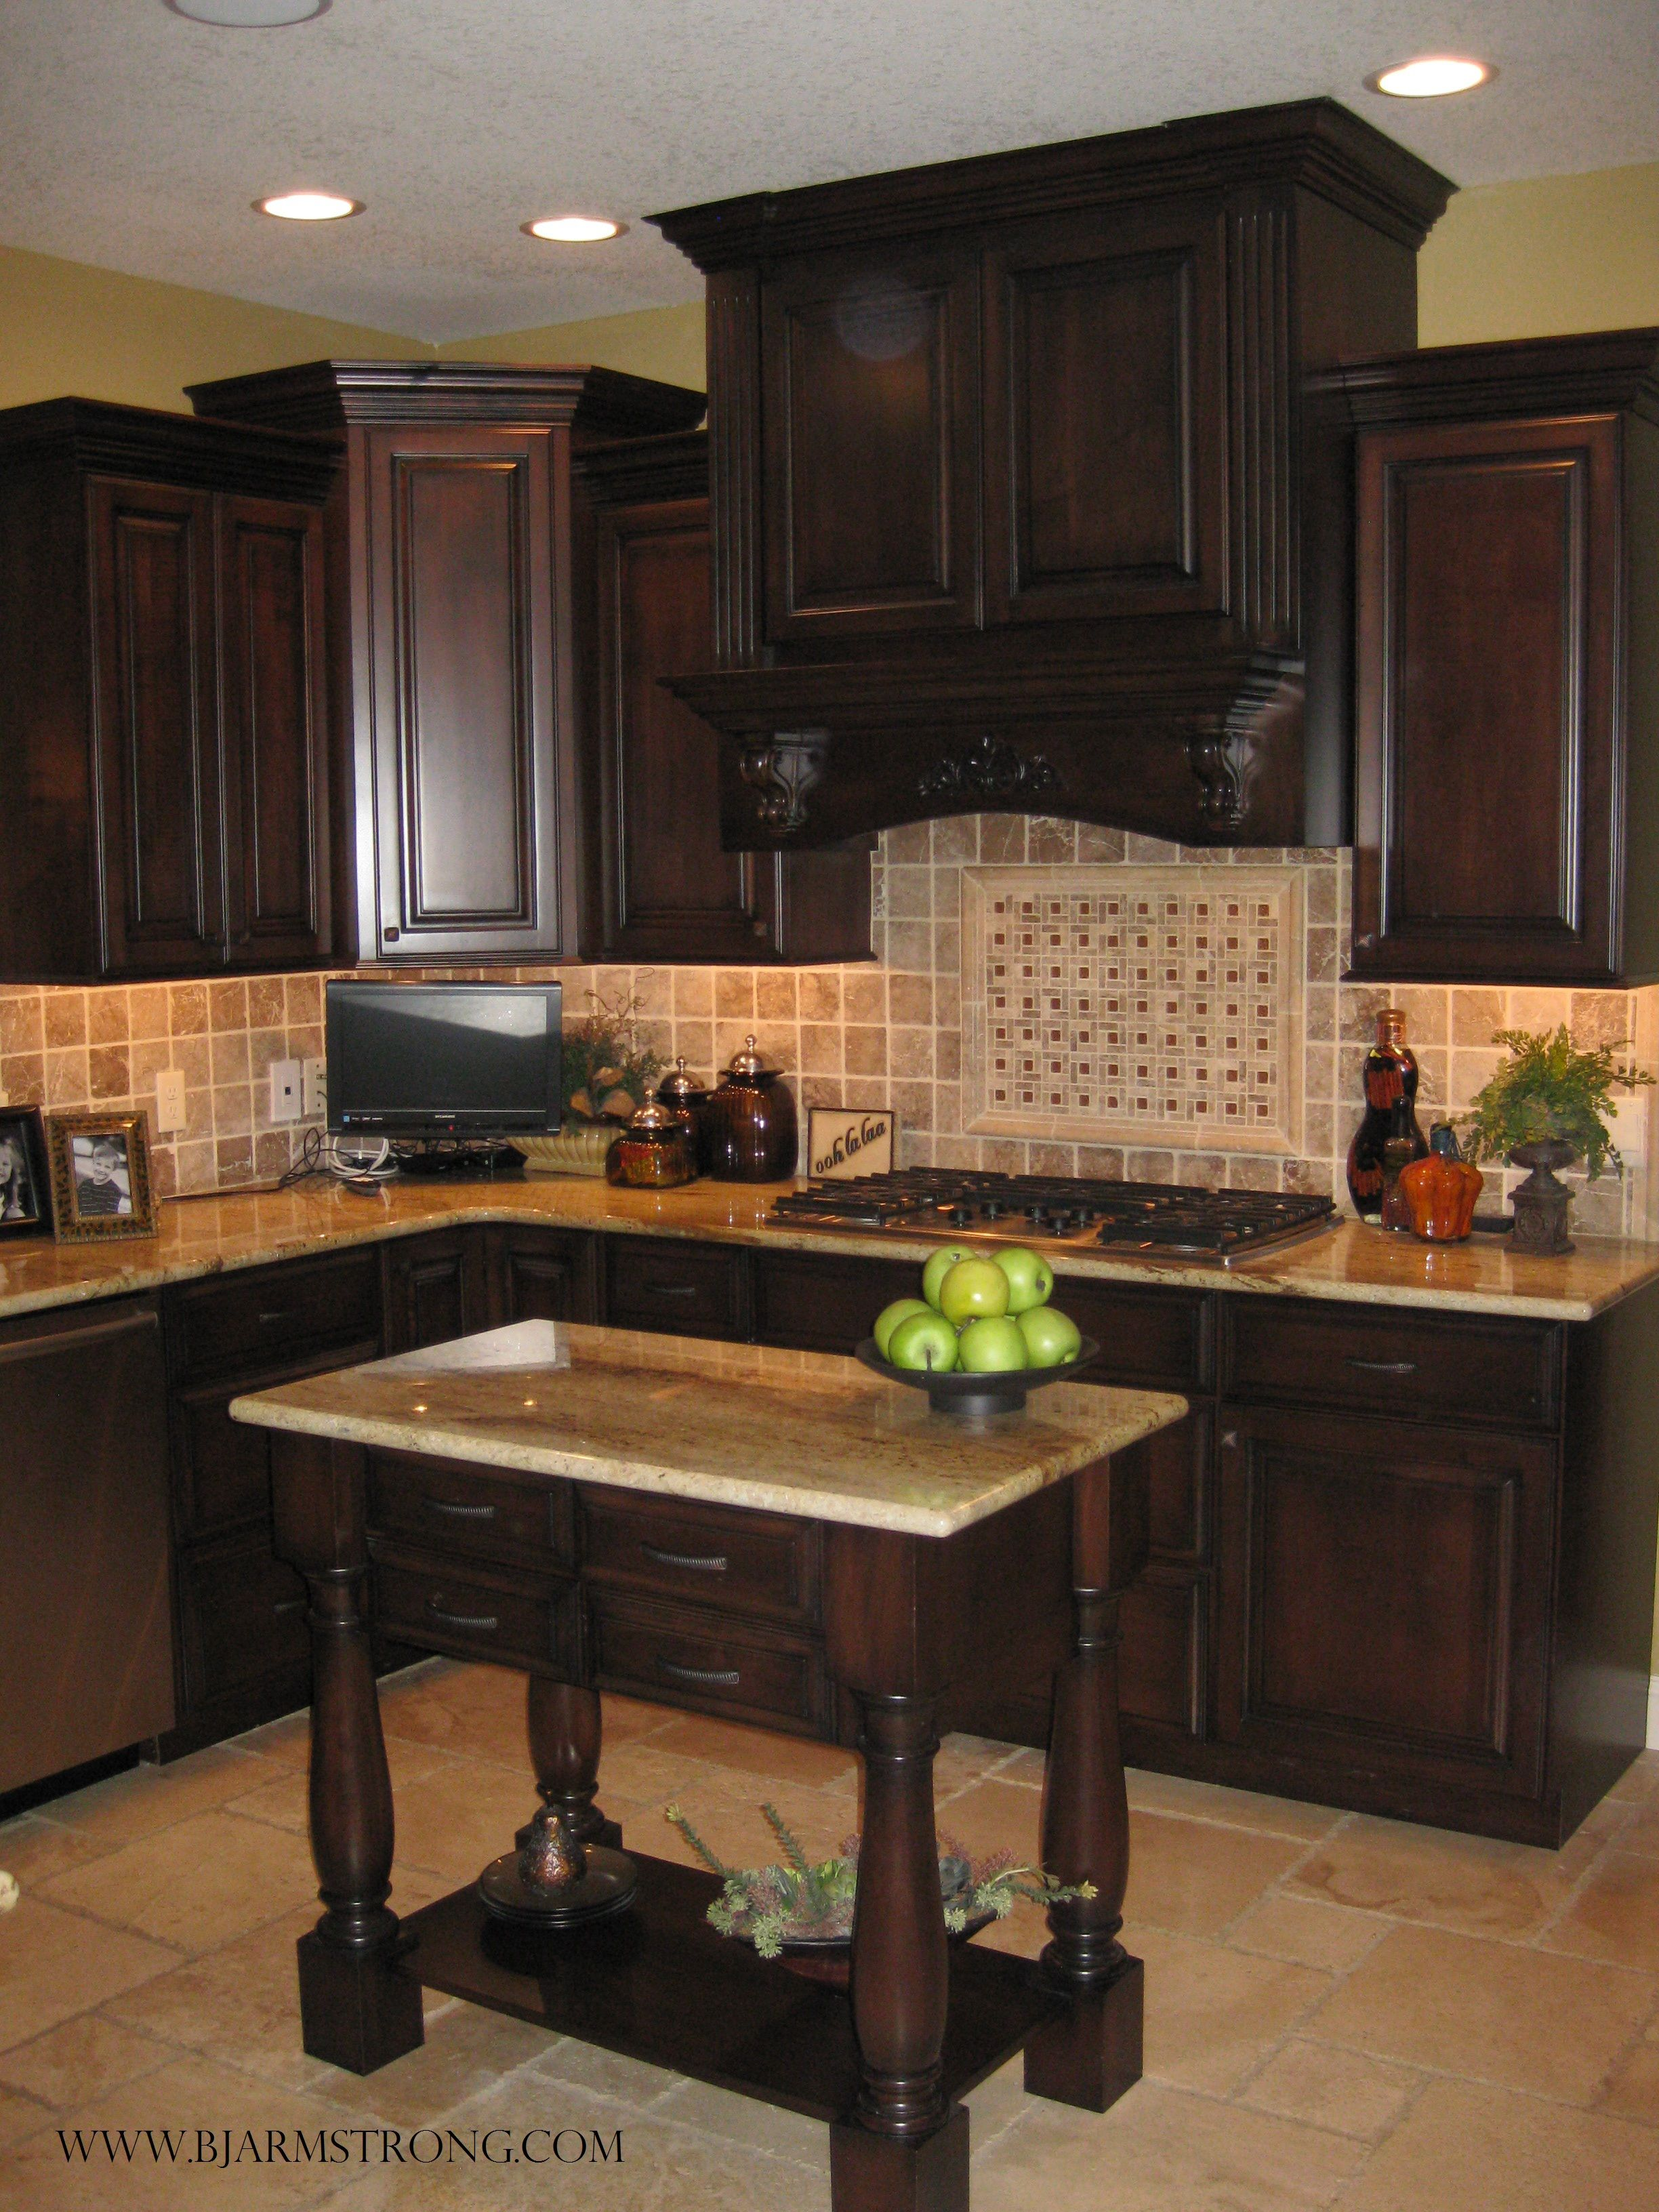 custom kitchen cabinets, island with granite countertops, tile